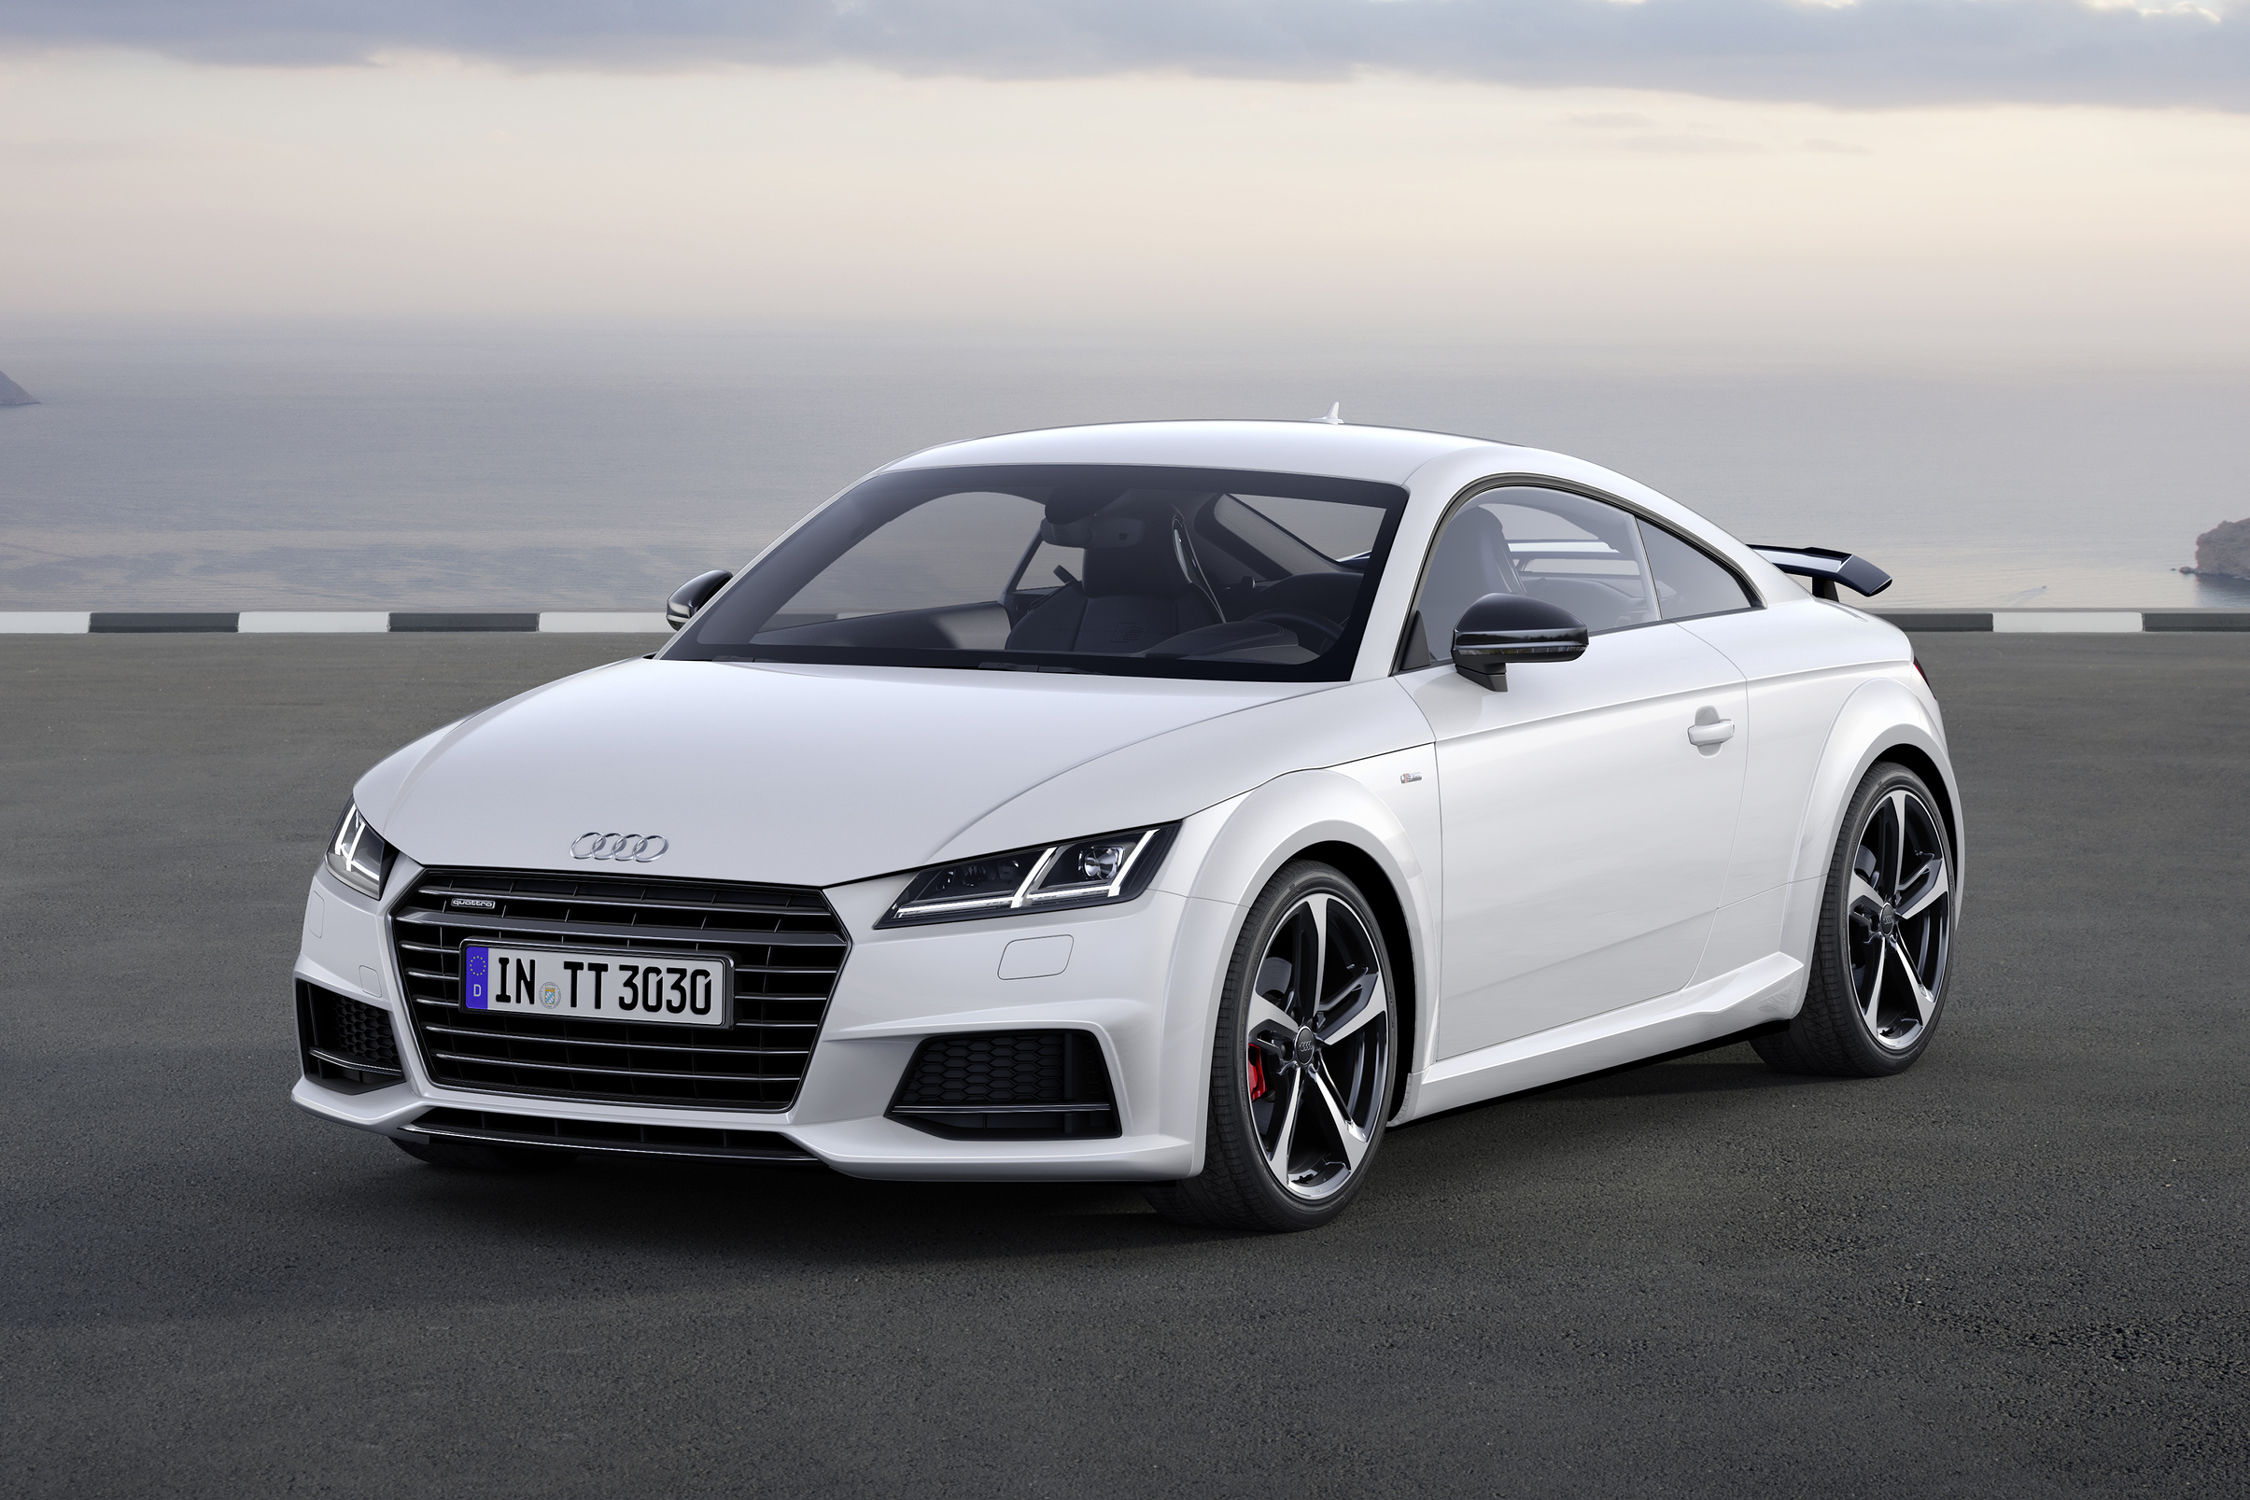 Audi tt coupe 2016 white